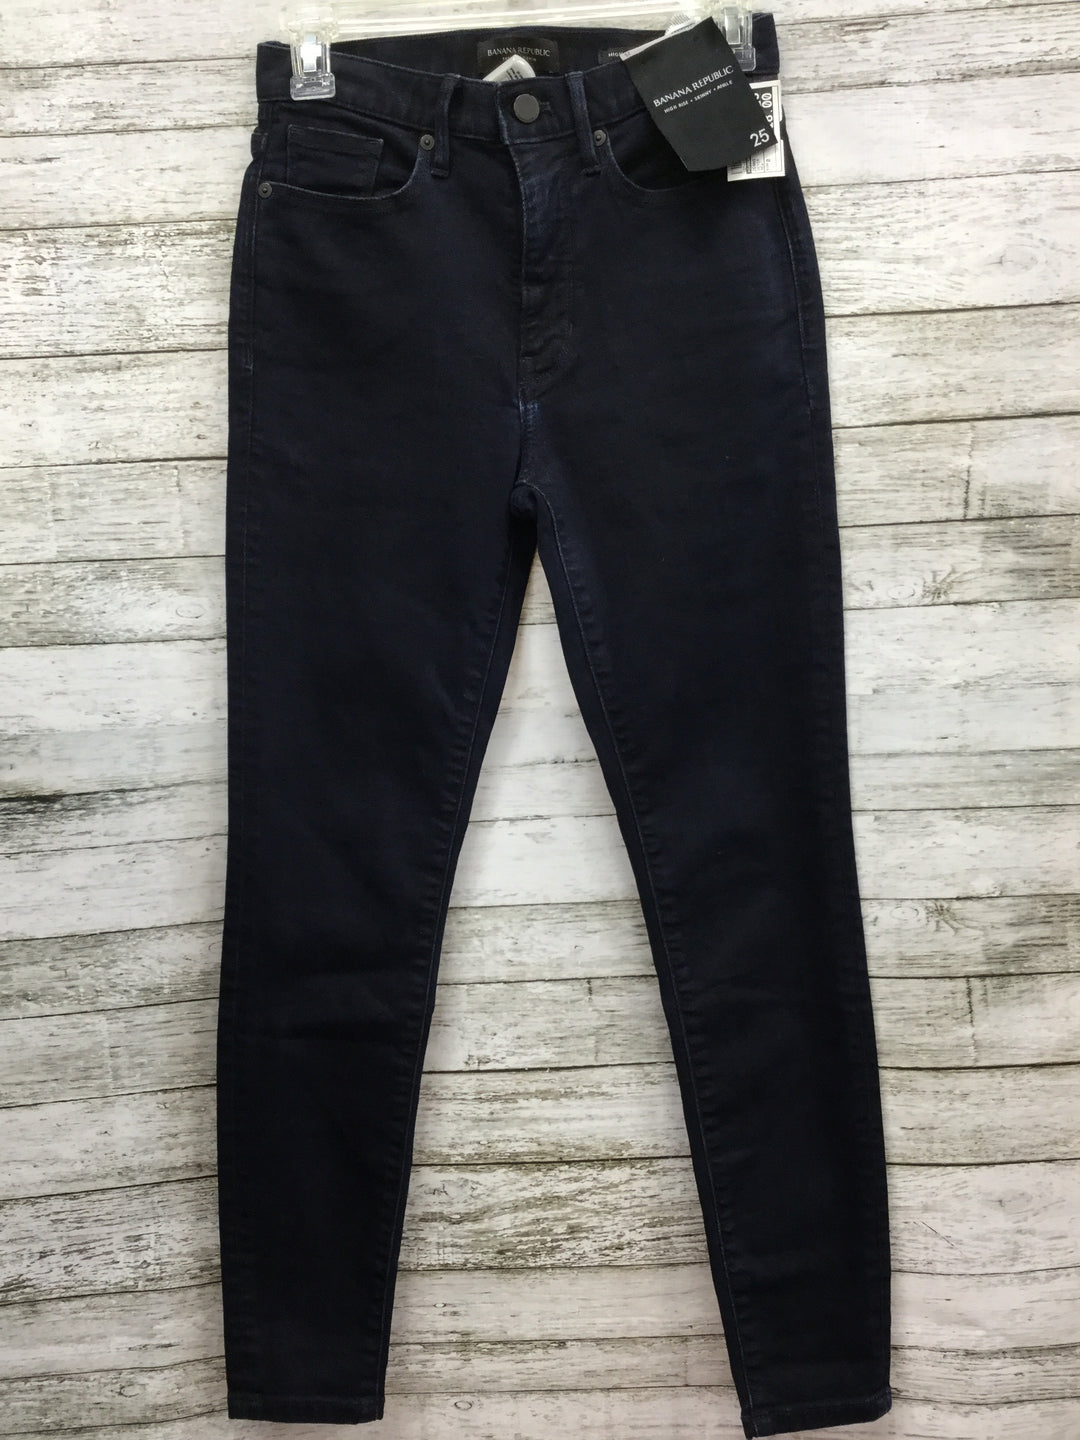 Primary Photo - BRAND: BANANA REPUBLIC , STYLE: JEANS , COLOR: DENIM , SIZE: 0 , OTHER INFO: NEW! , SKU: 127-4954-4755, , NEW WITH TAGS, HIGH RISE, SKINNY, ANKLE JEANS.